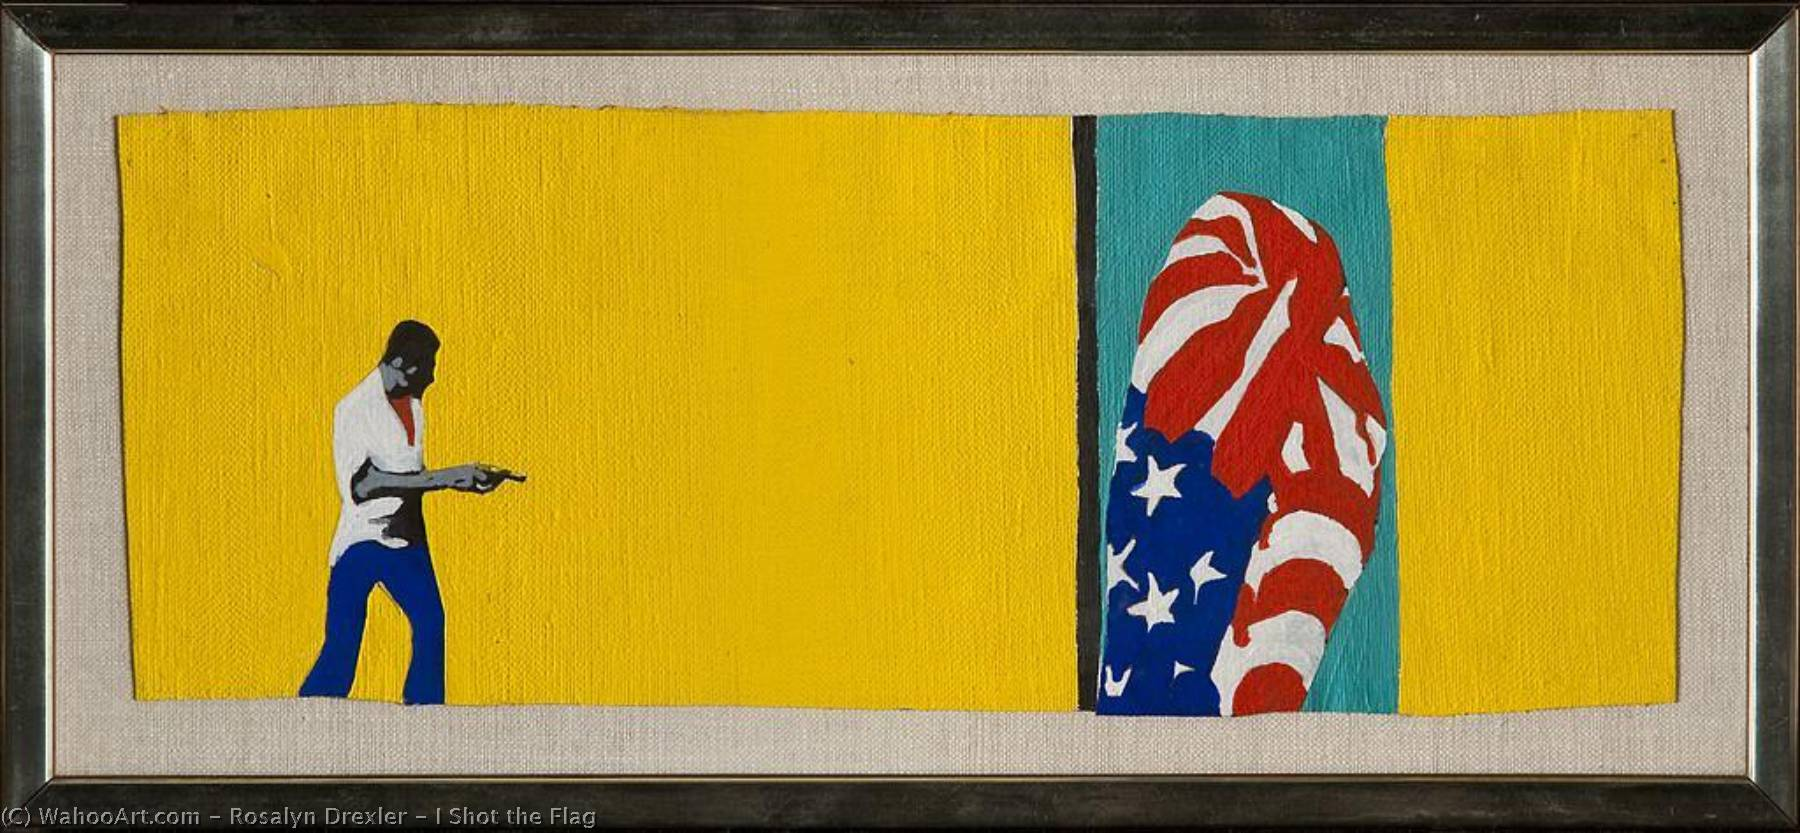 I Shot the Flag, Oil On Canvas by Rosalyn Drexler